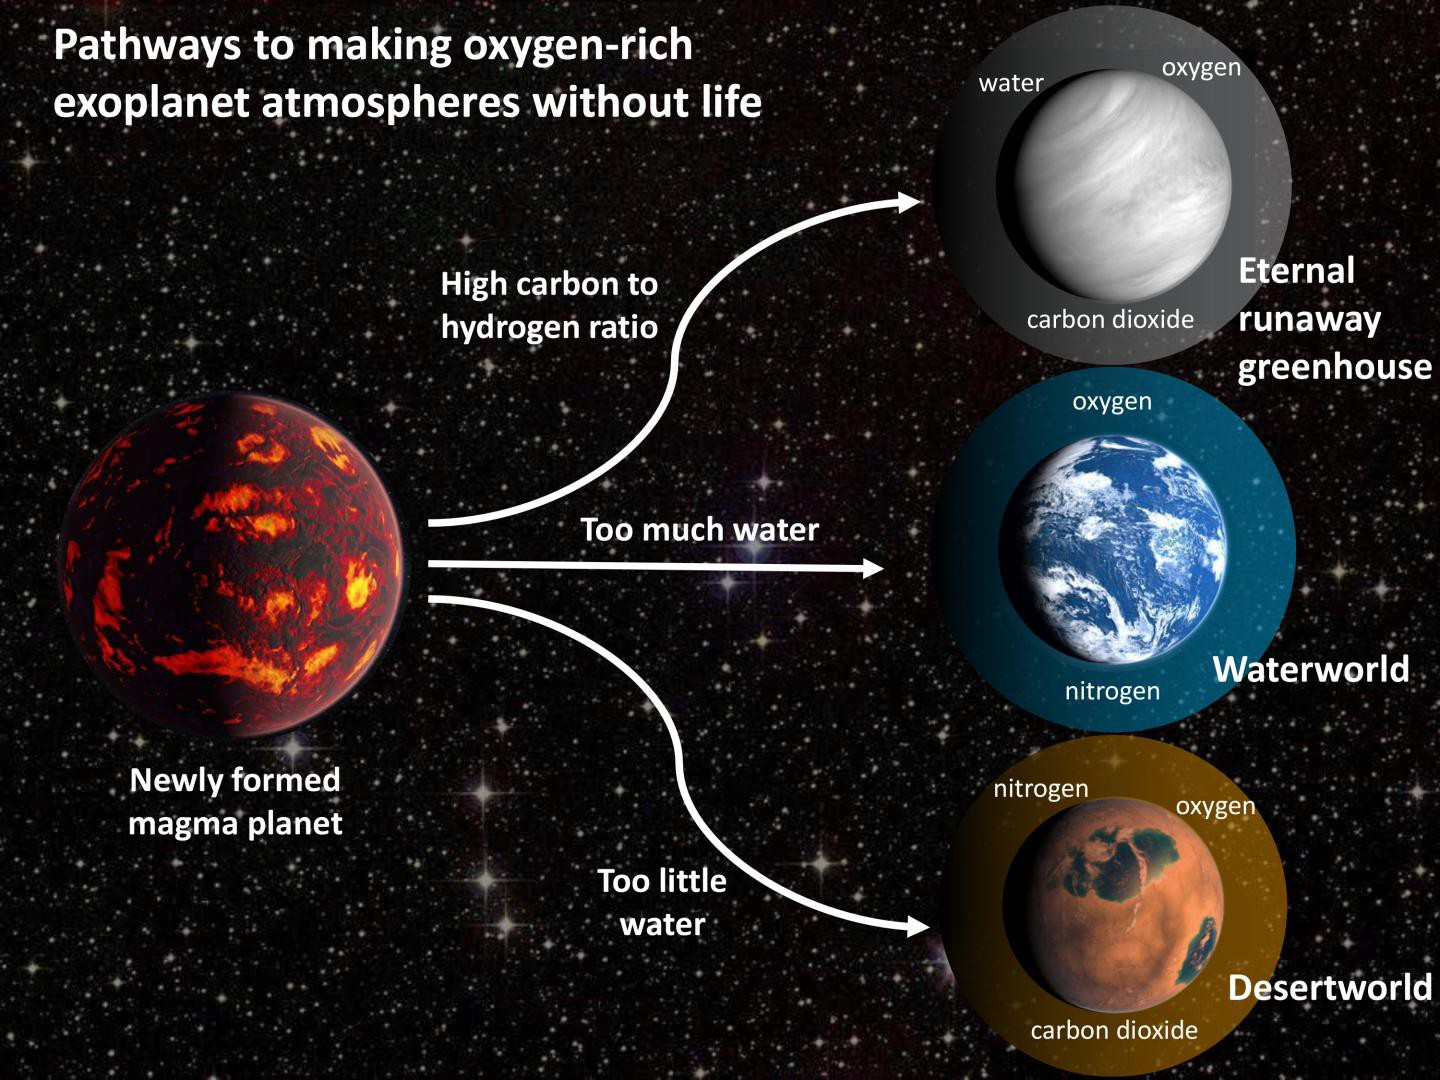 A look at how young magma planets could evolve into oxygen-rich worlds either with or without life.